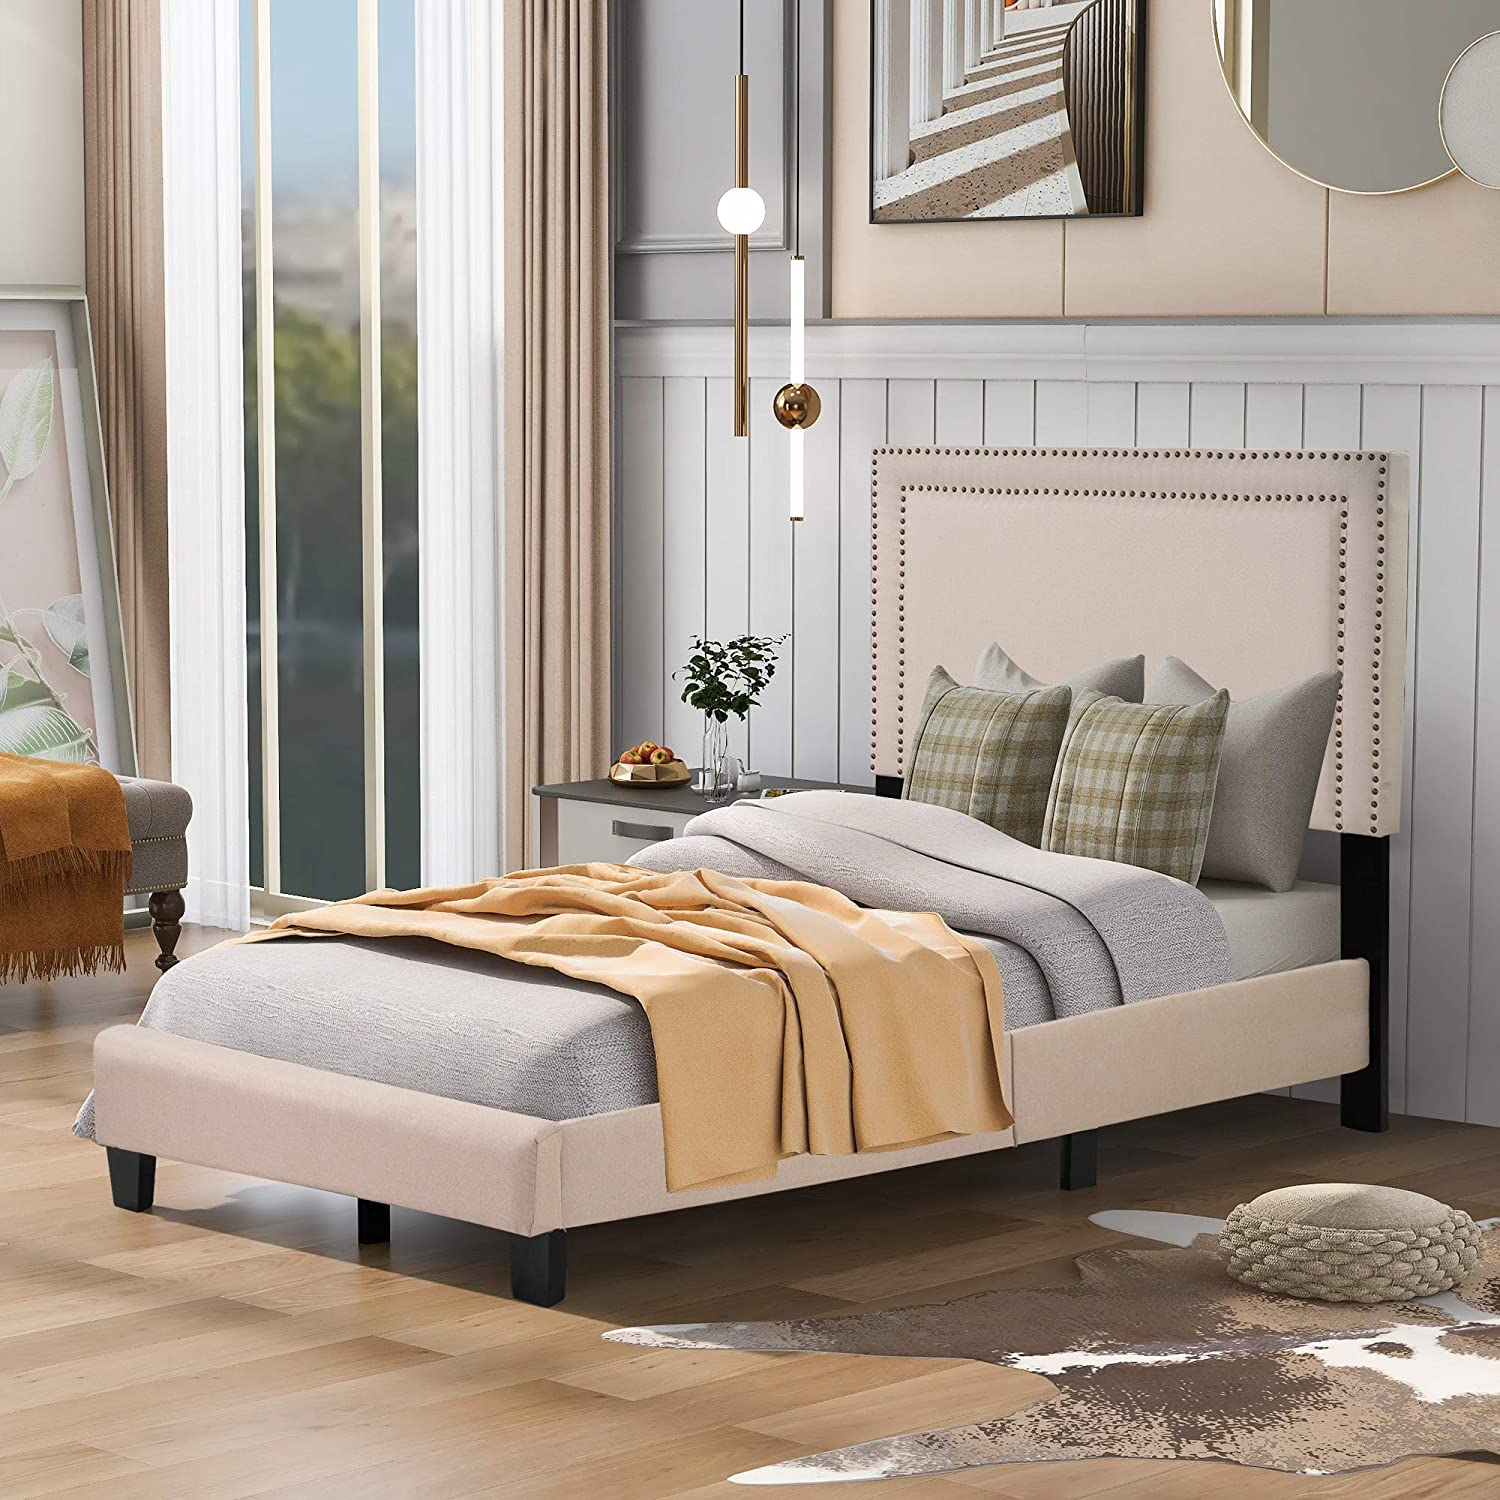 Regular store Knocbel Special price for a limited time Upholstered Twin Bed Frame with and T Nailhead Headboard